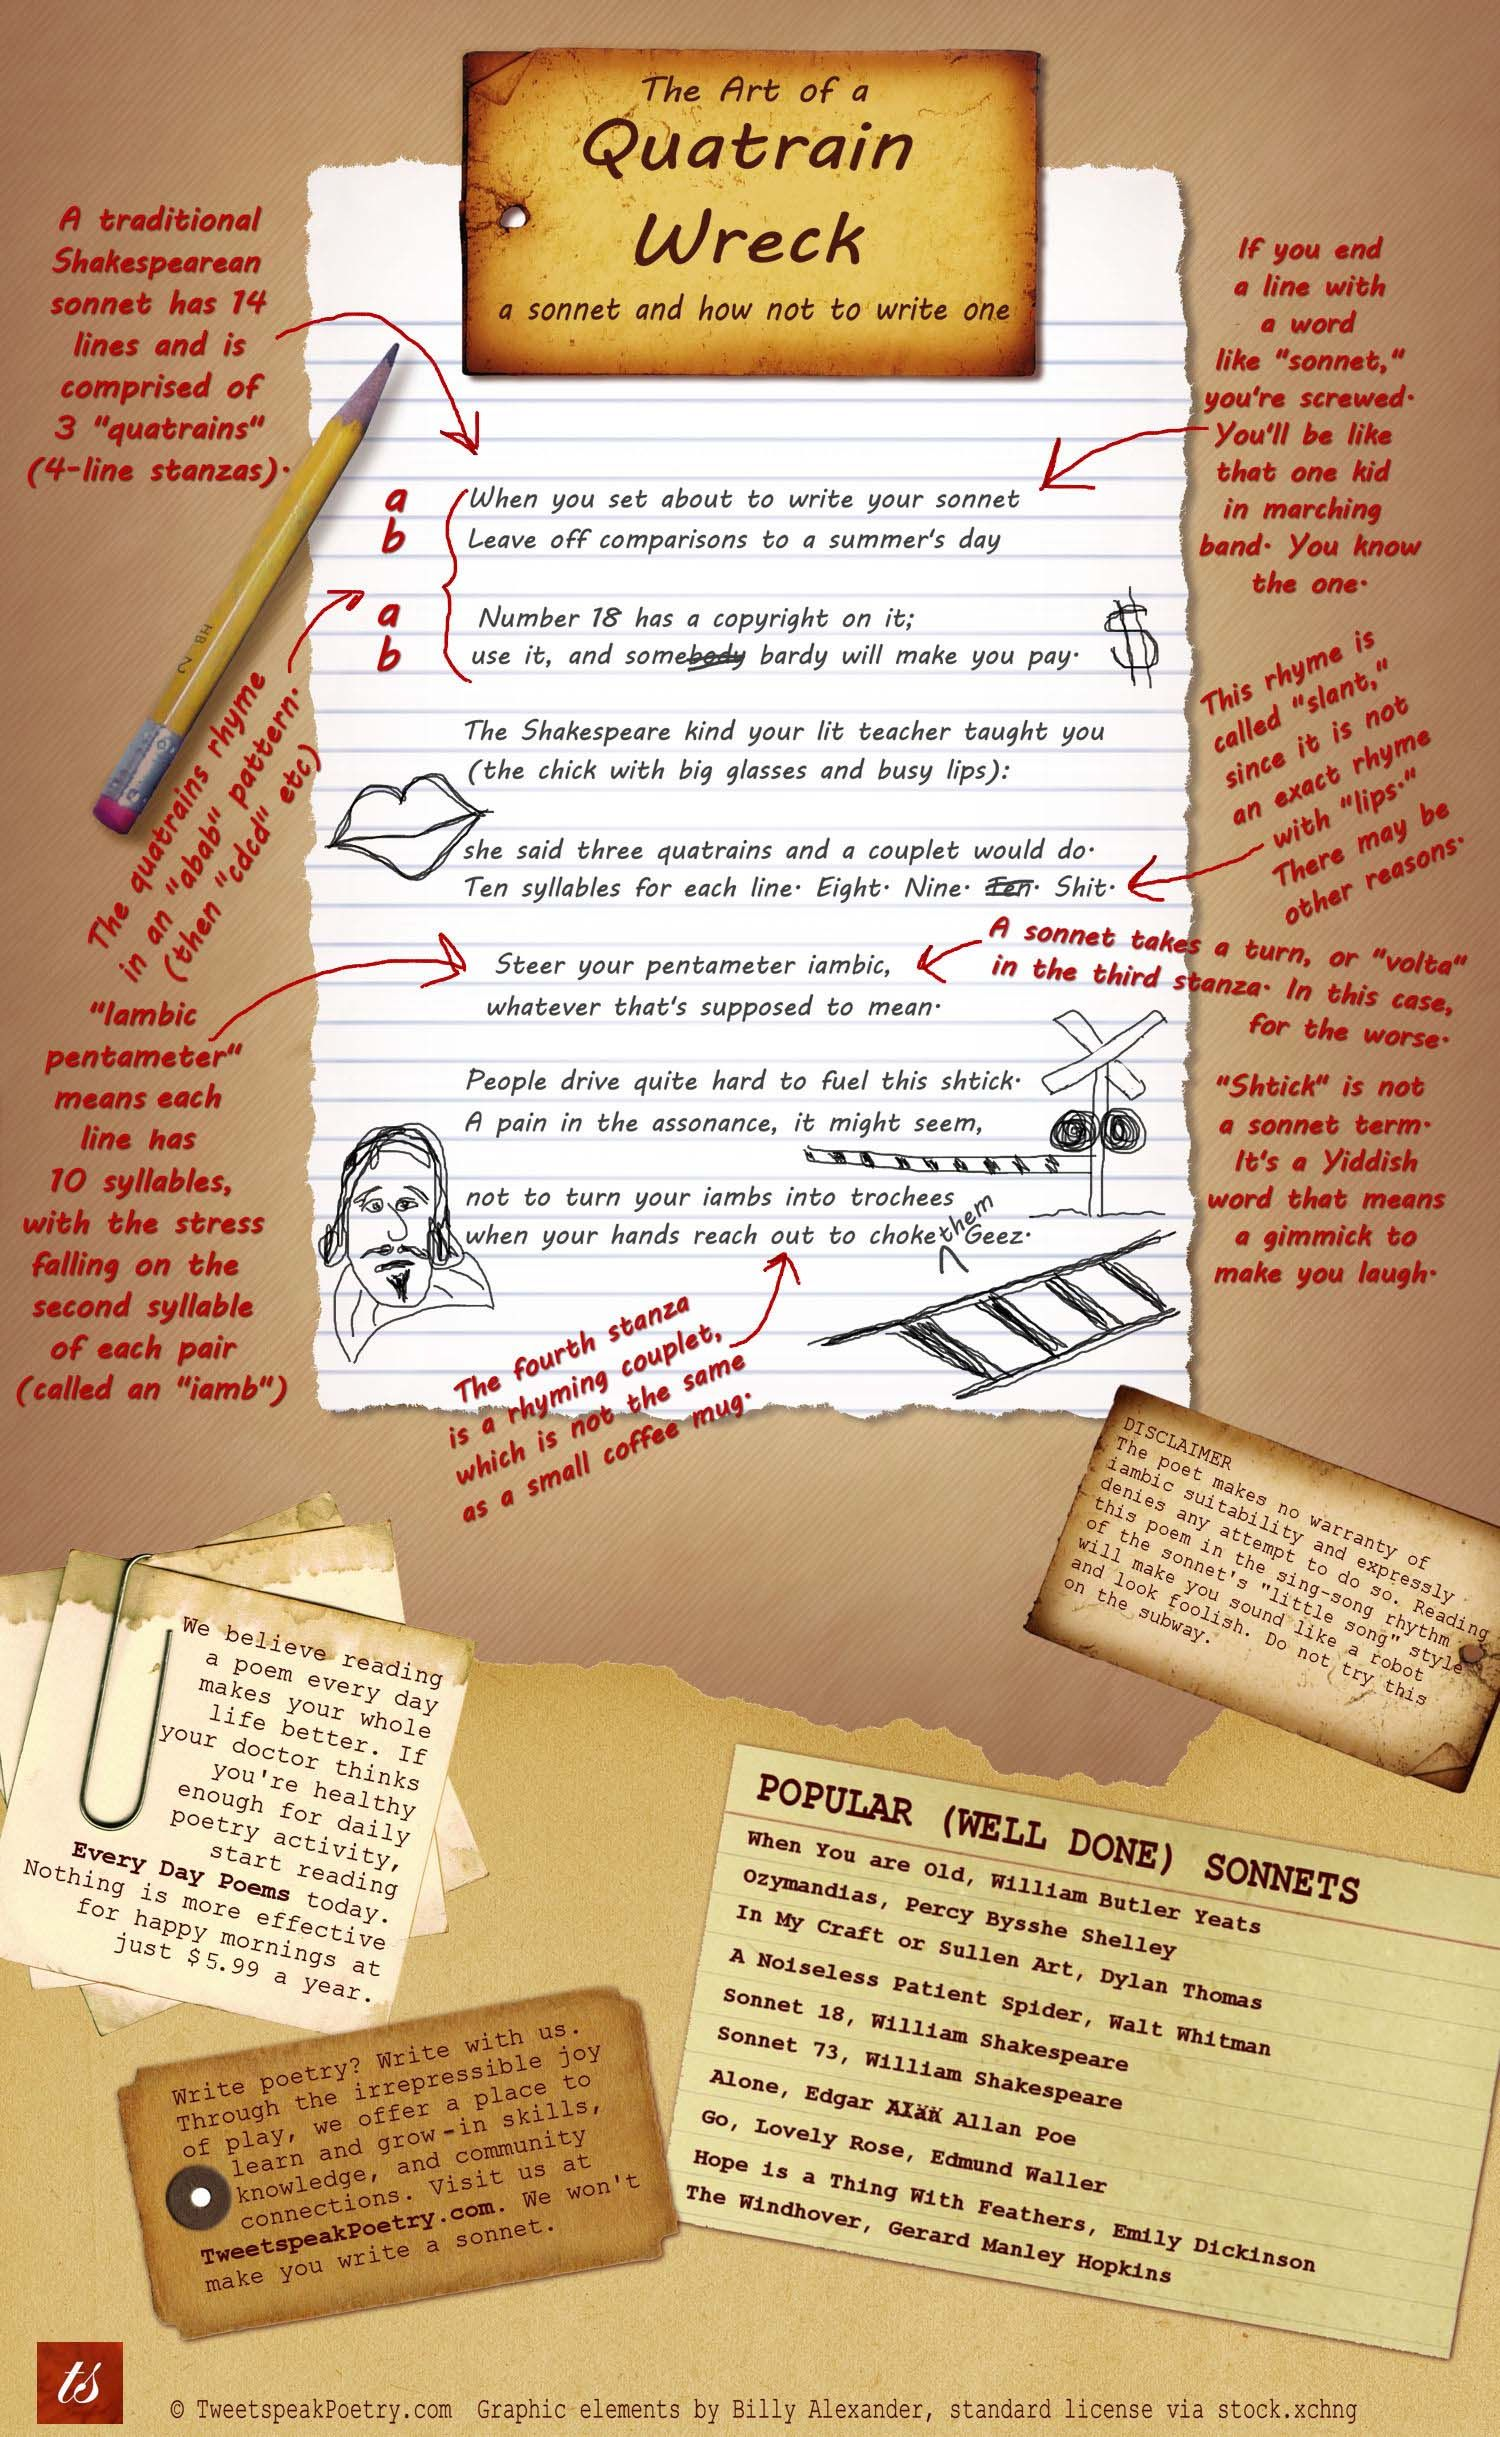 How To Write A Sonnet Fun Infographic From Tweetspeak New York